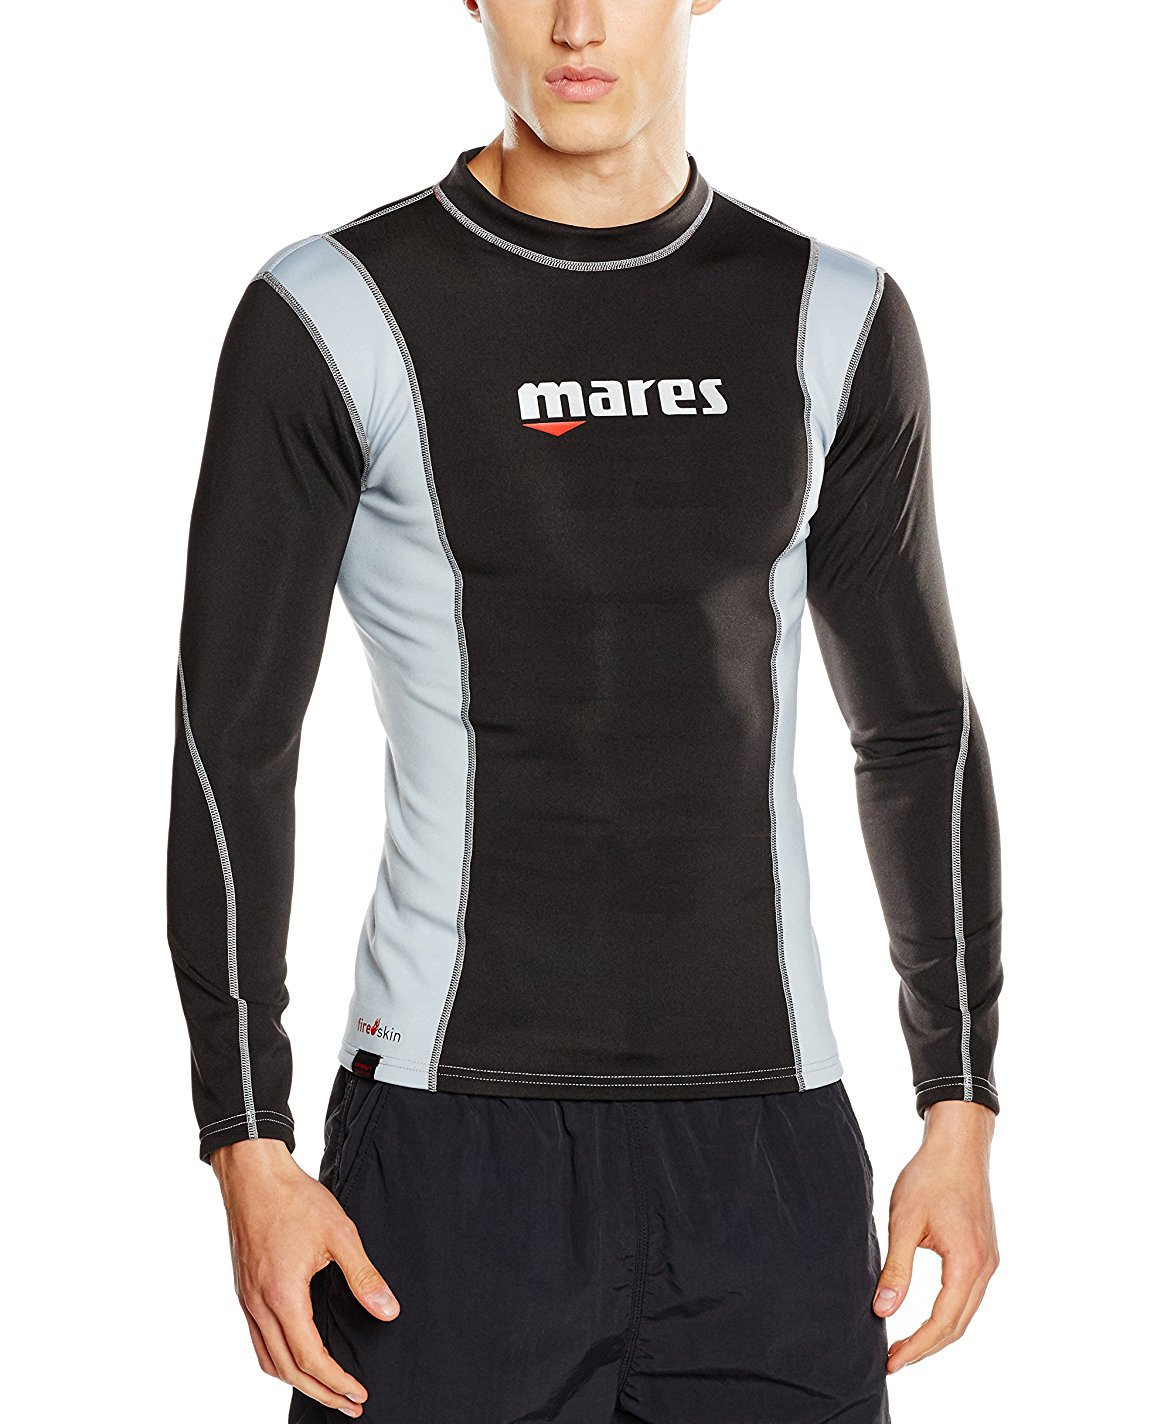 Mares Men's Fire Skin Long Sleeve Shirt Watersport Protection Gear, Small